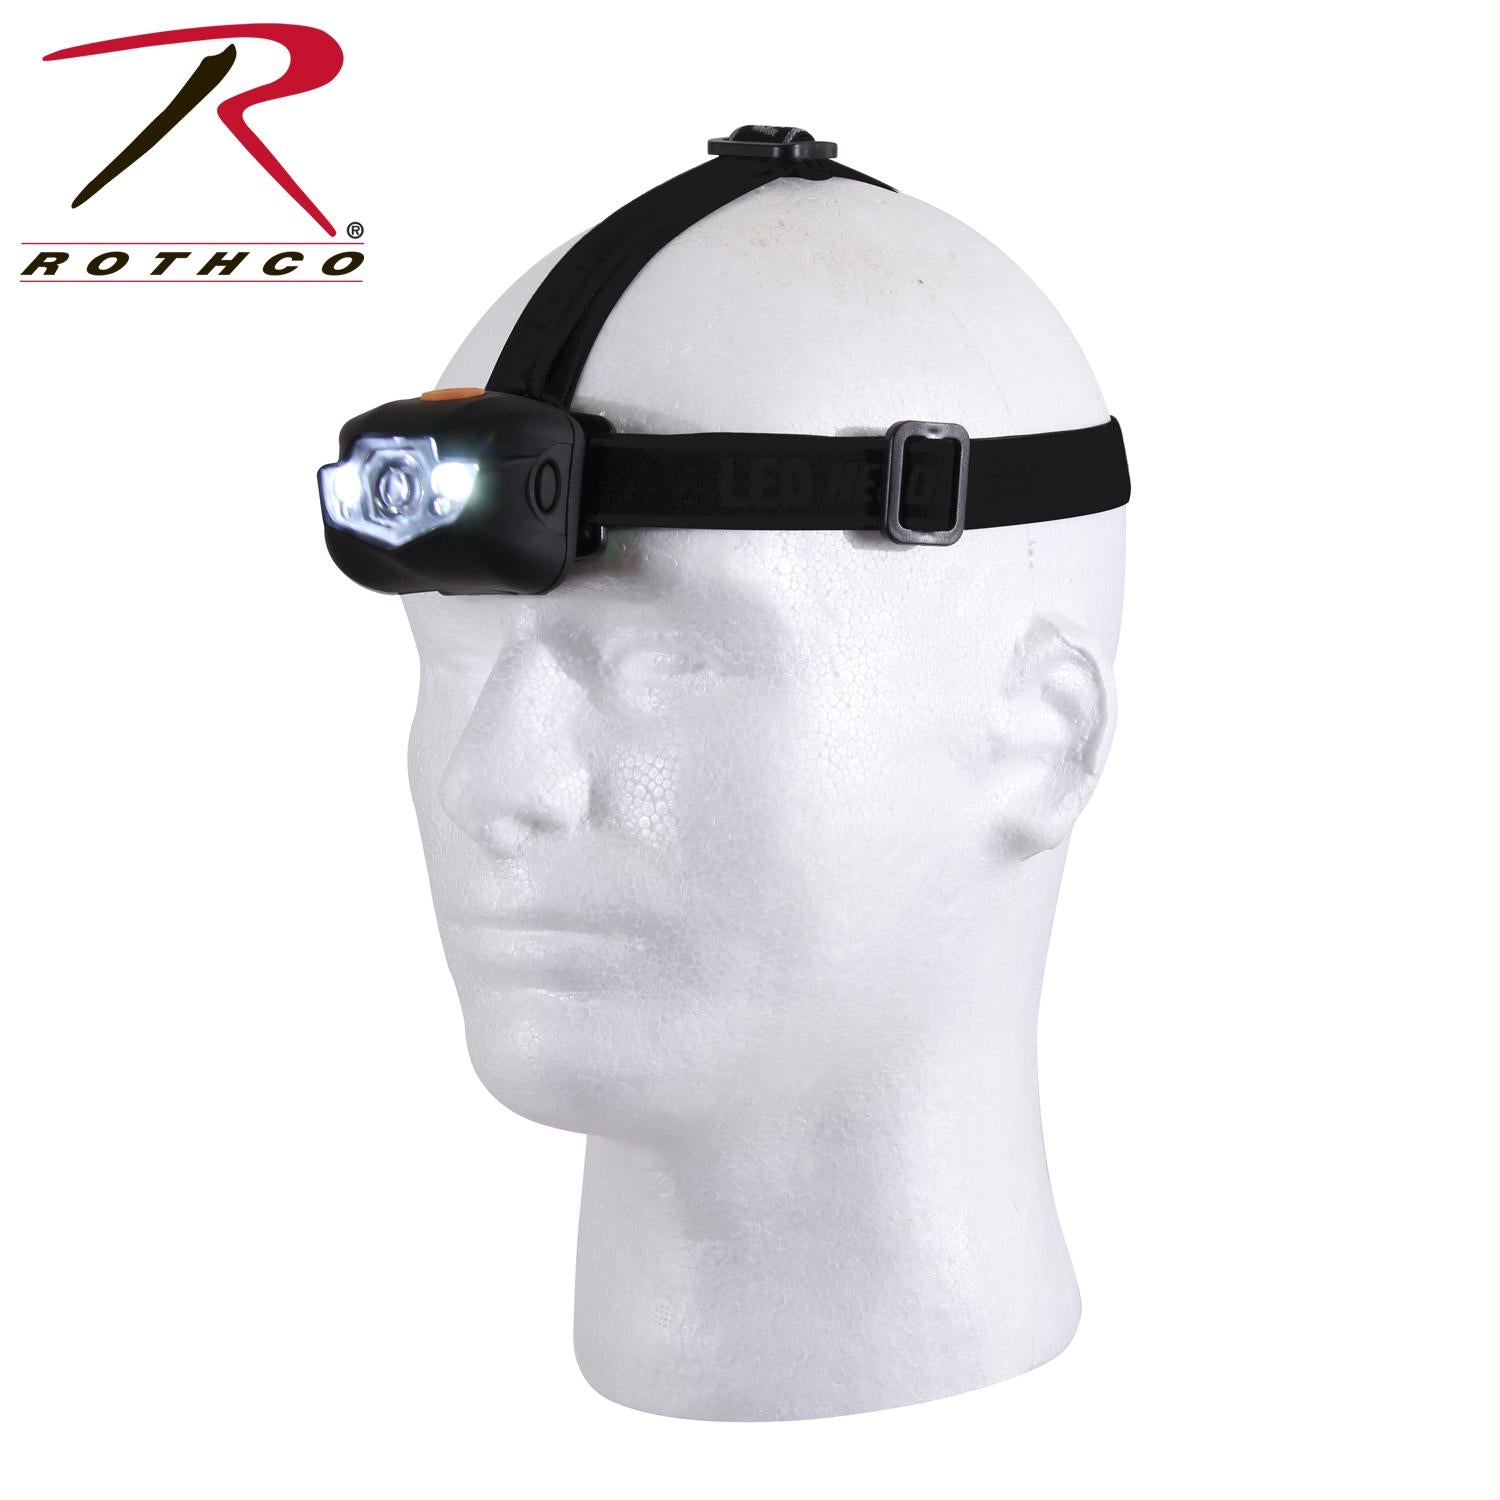 Rothco LED Headlamp